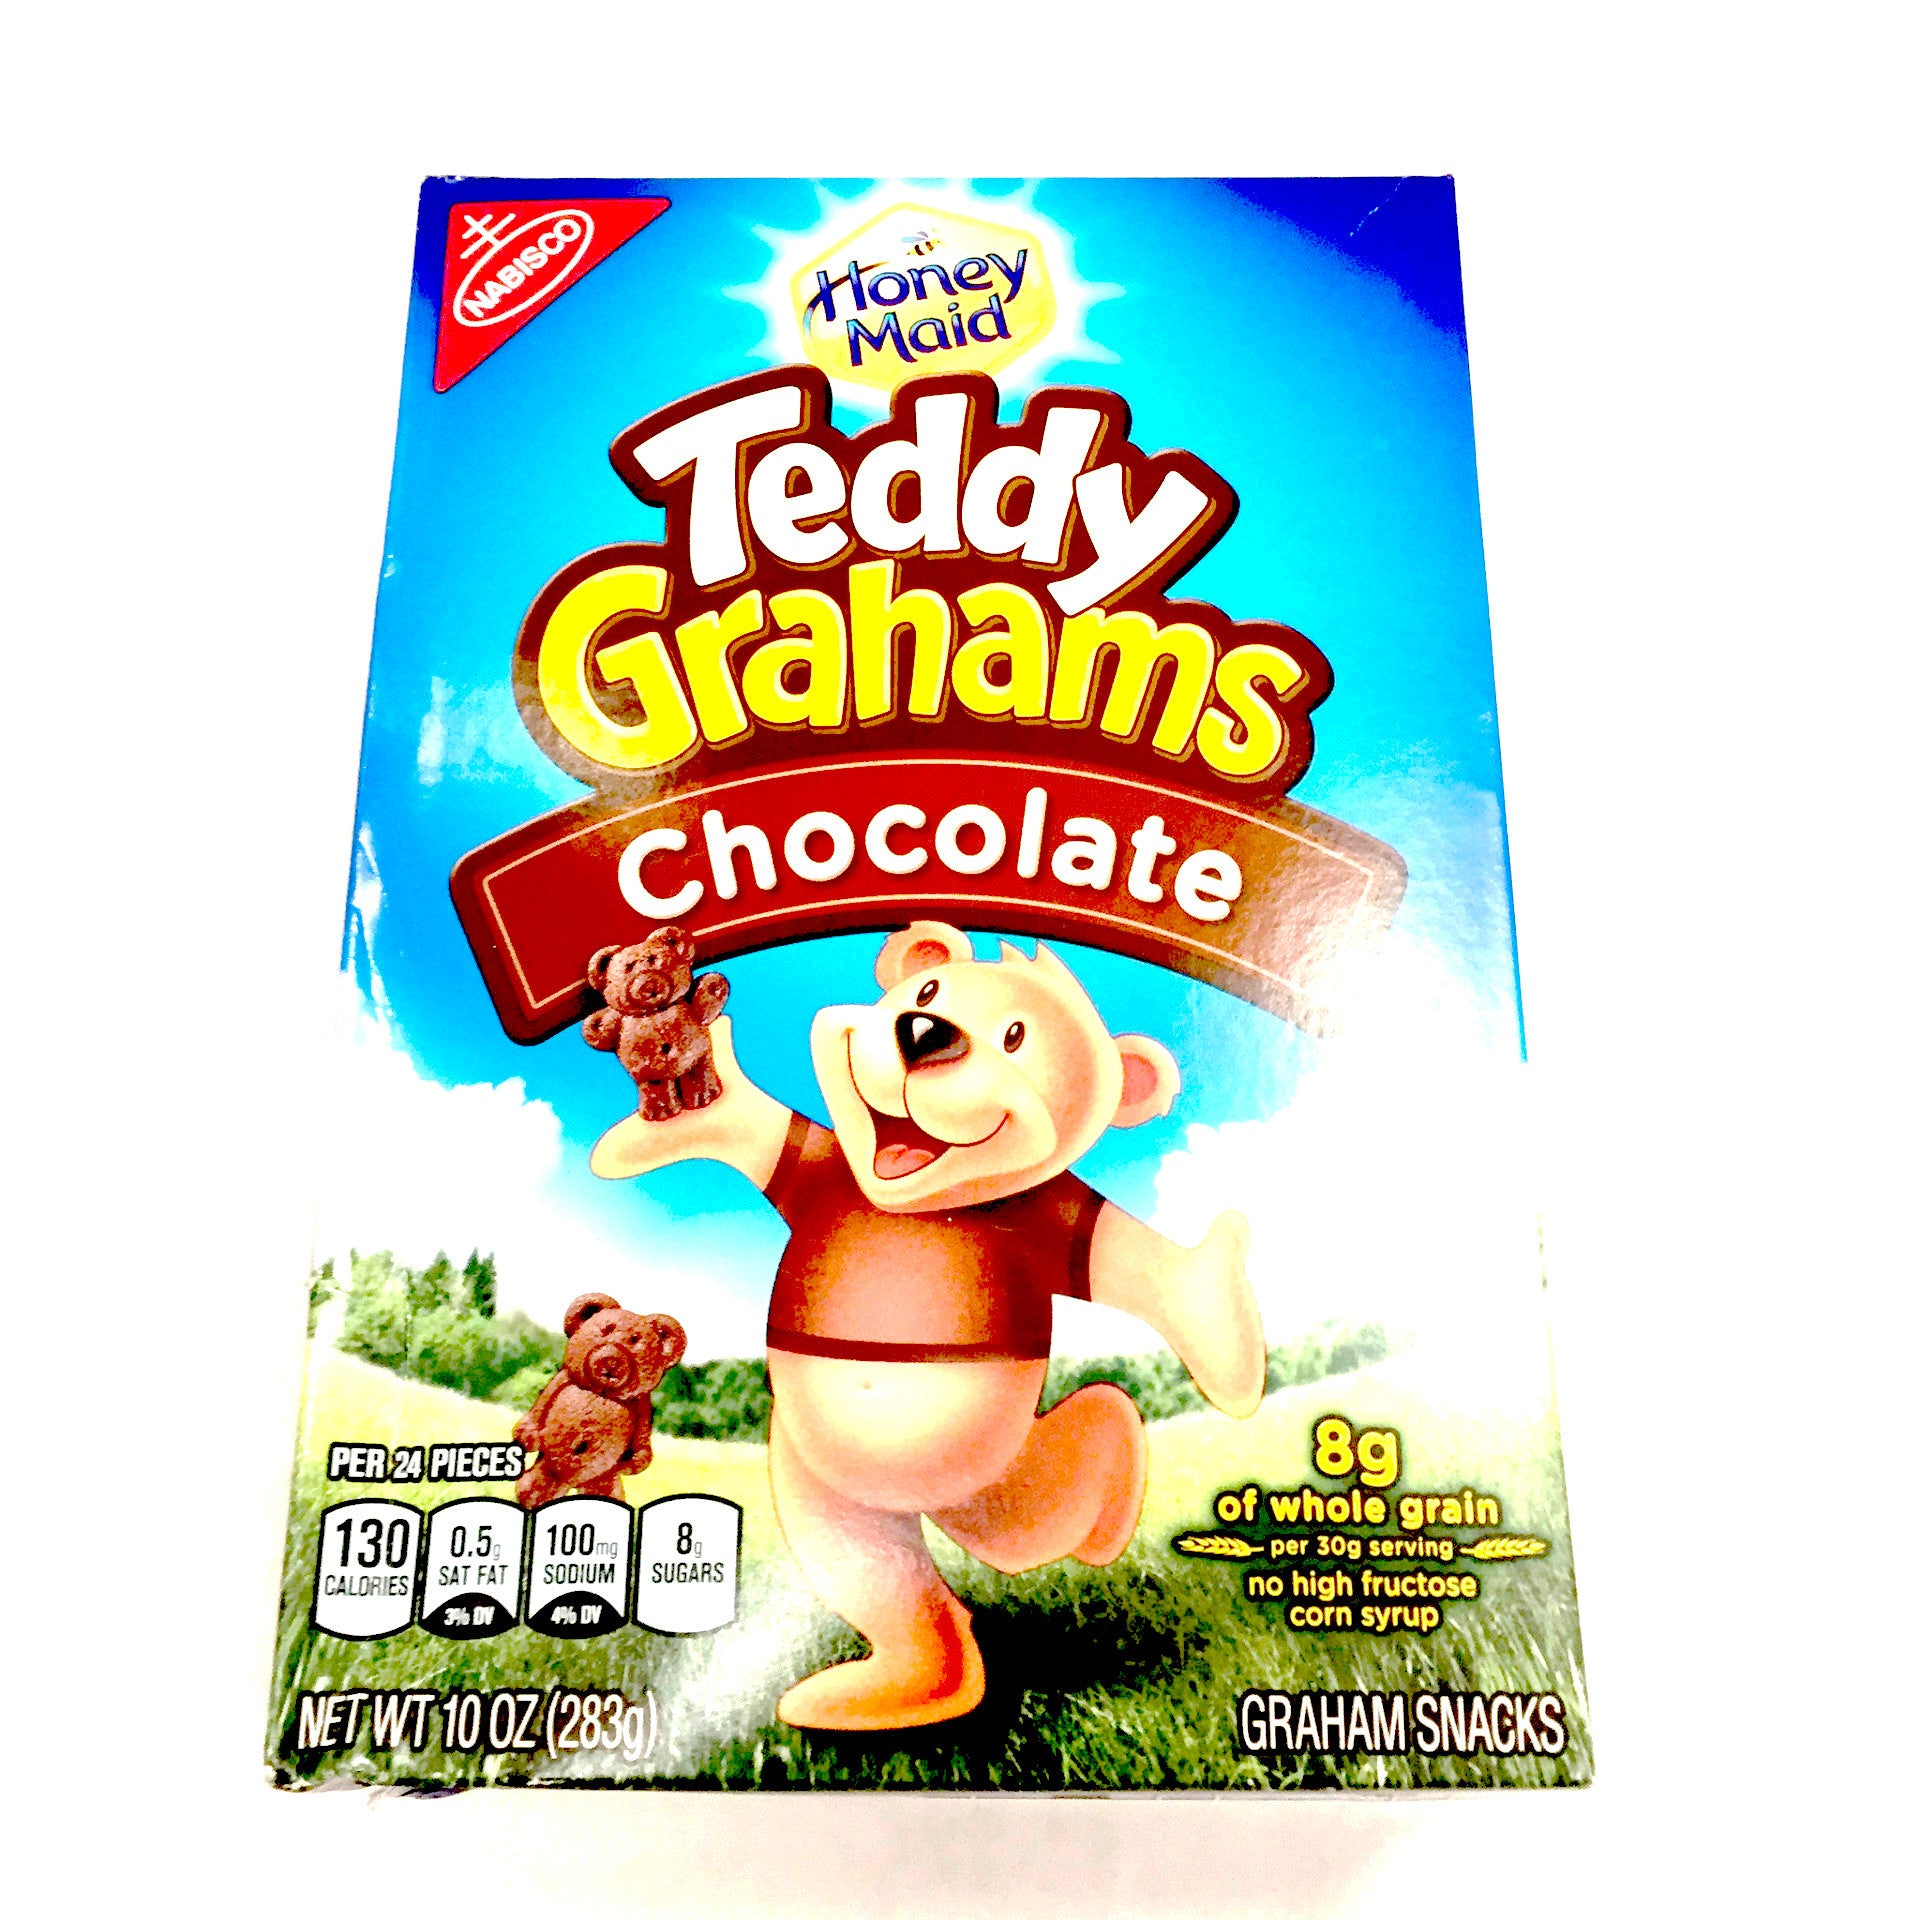 Honey Maid Teddy Grahams Chocolate - 10oz